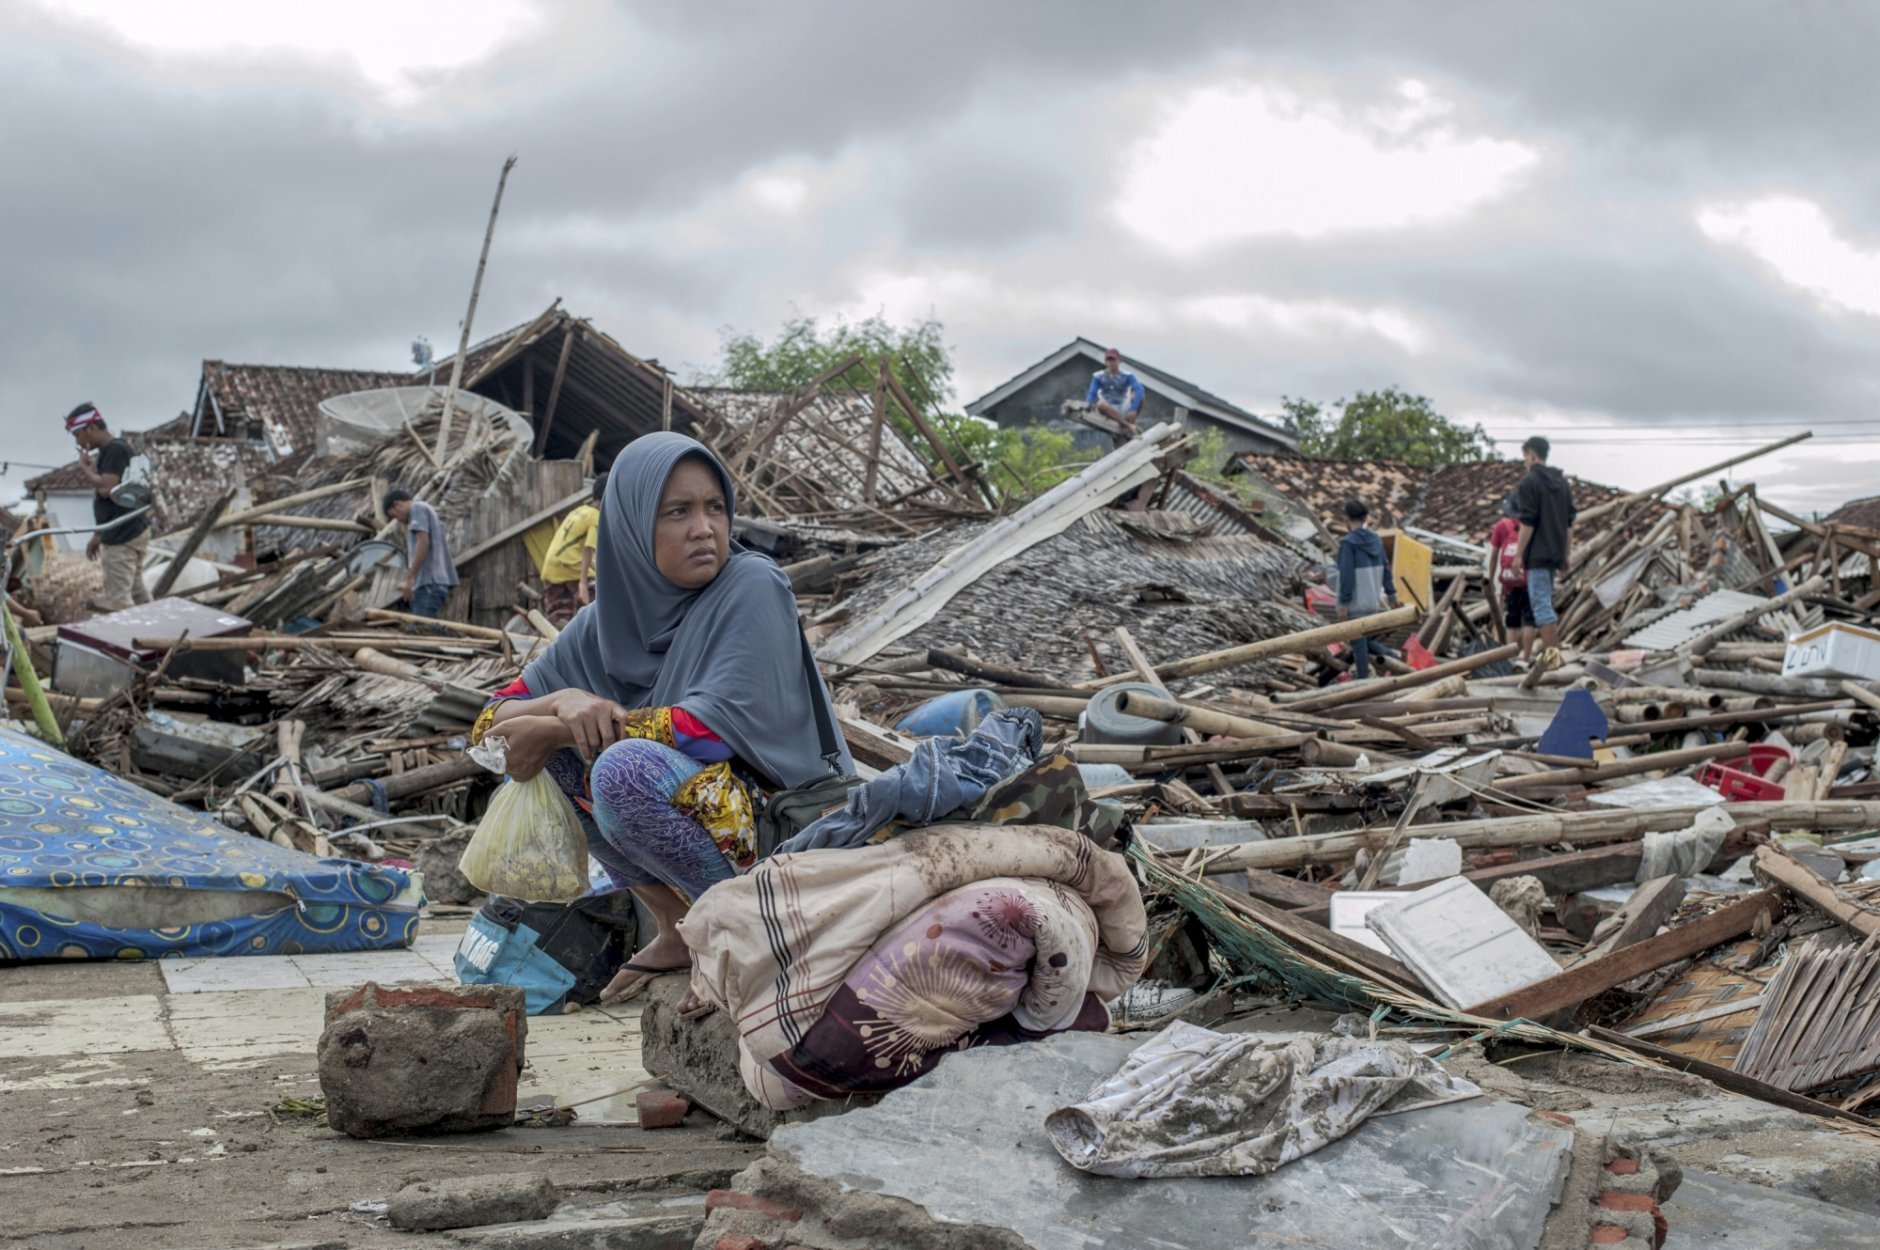 In this Monday, Dec. 24, 2018, photo, a tsunami survivor sits on a pice of debris as she salvages items from the location of her house in Sumur, Indonesia. The tsunami that hit the coasts of Indonesian islands along the Sunda Strait was not big but it was destructive. The waves smashed onto beaches in the darkness Saturday night without warning, ripping houses and hotels from their foundations in seconds and sweeping terrified concertgoers into the sea. (AP Photo/Fauzy Chaniago)